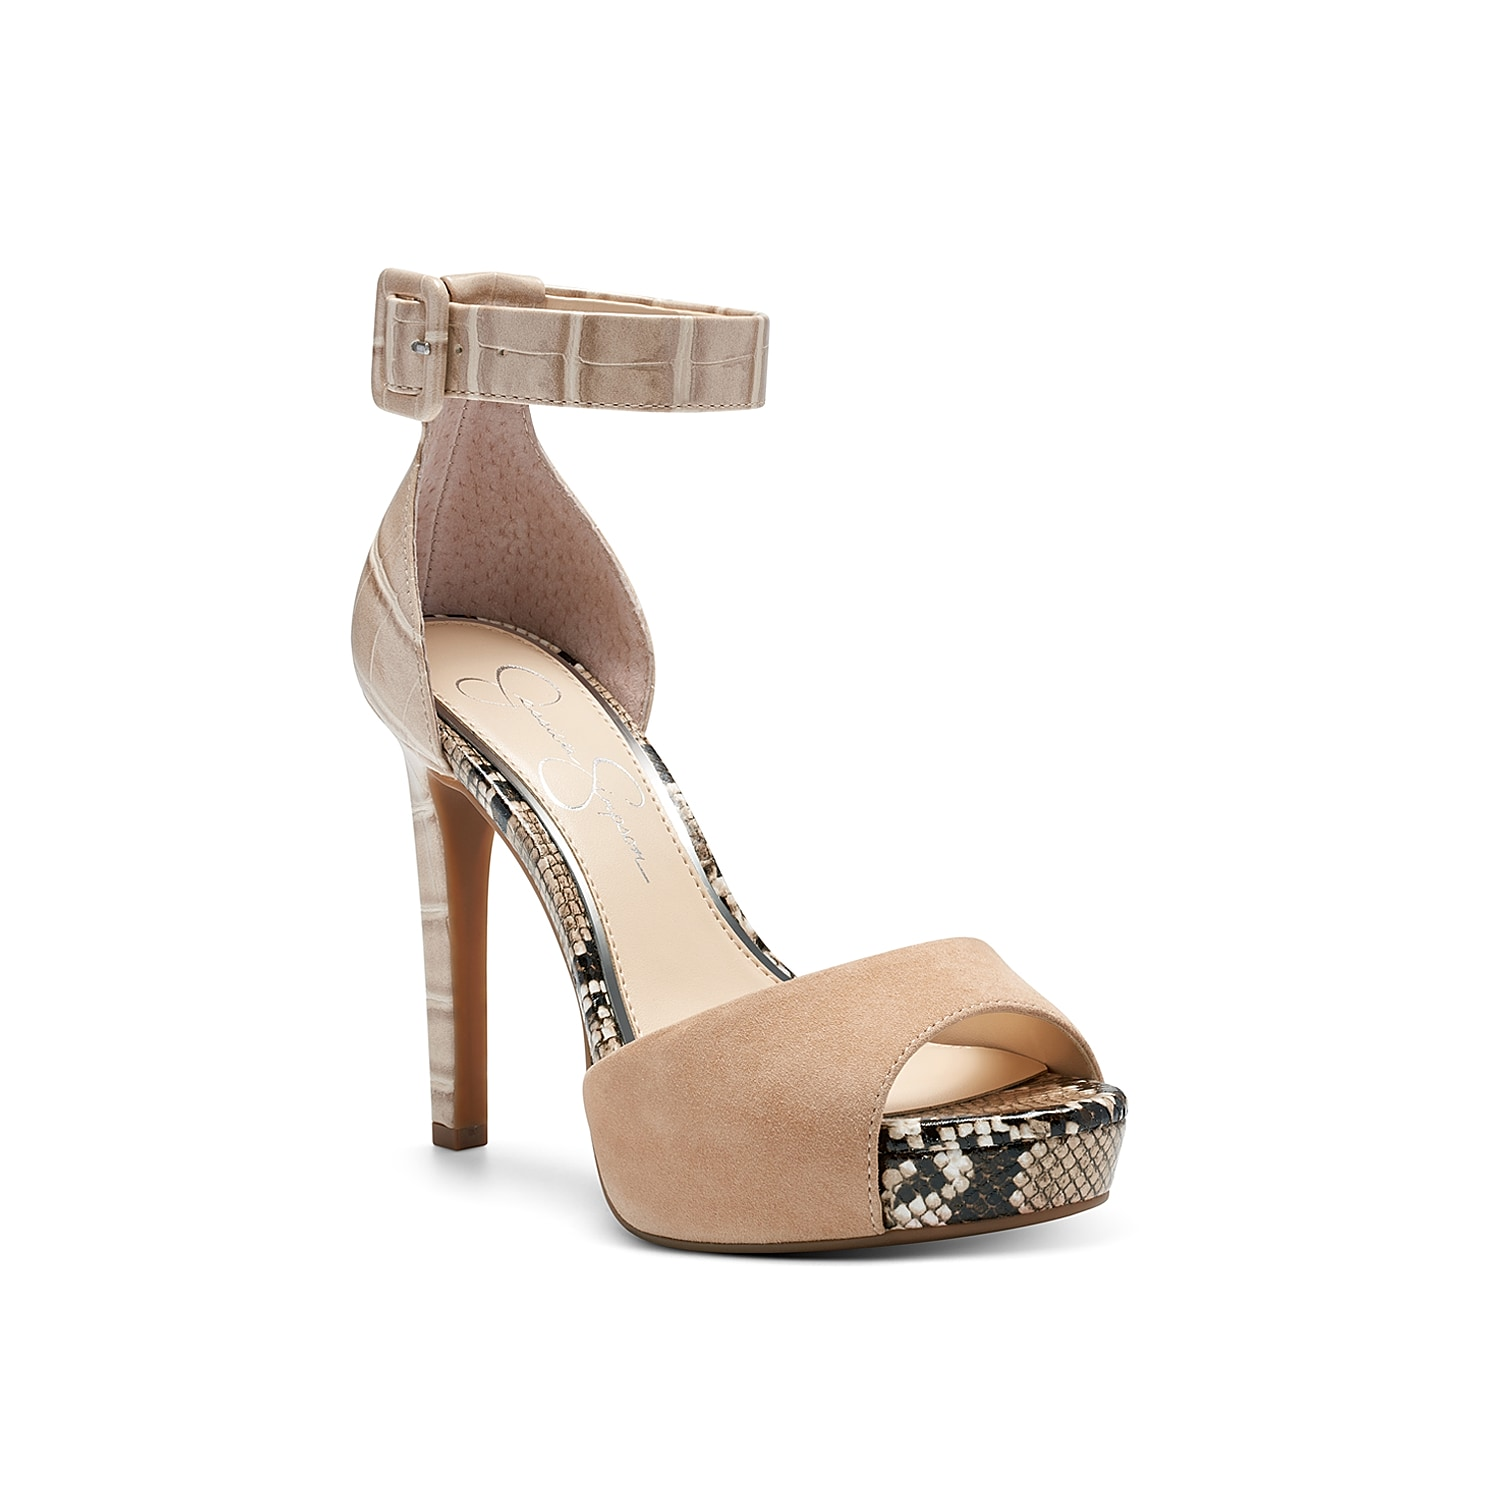 Take your style to new heights with the Divene platform sandal from Jessica Simpson. Featuring mixed prints, a croc embossed stiletto, and thick ankle strap, this two-piece will be sure to catch eyes.